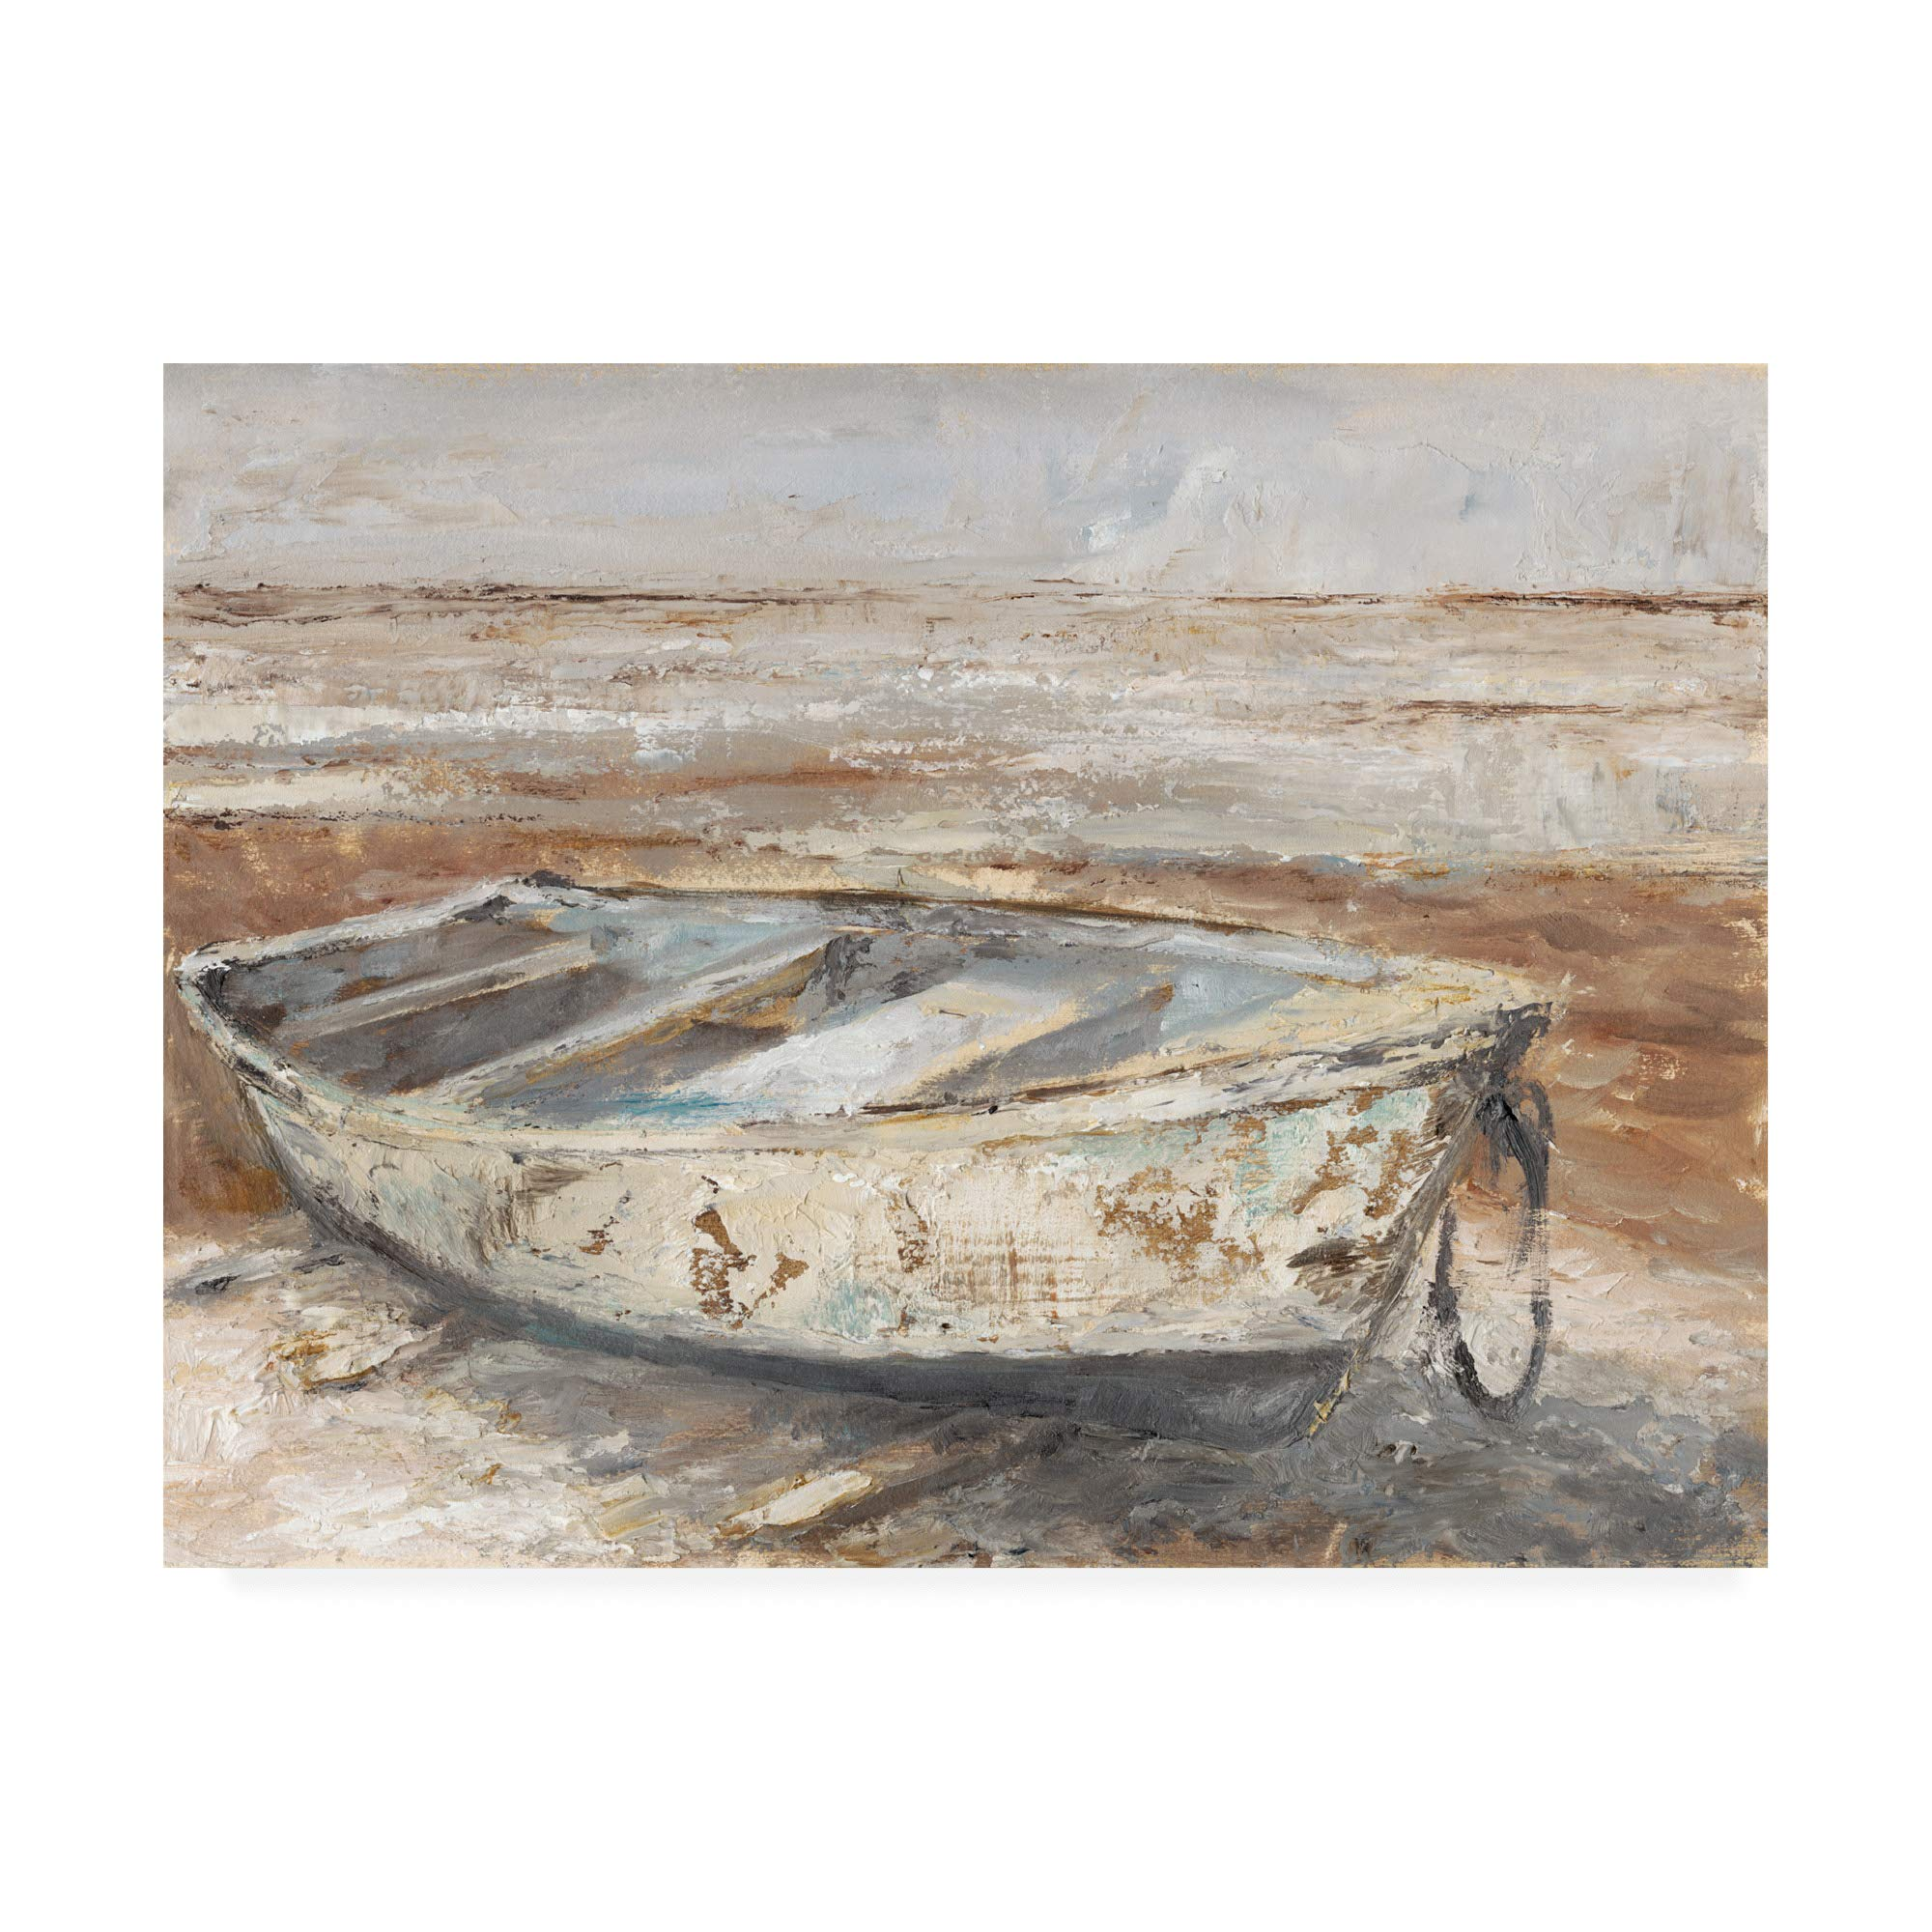 Trademark Fine Art Weathered Rowboat I by Ethan Harper, 18x24 by Trademark Fine Art